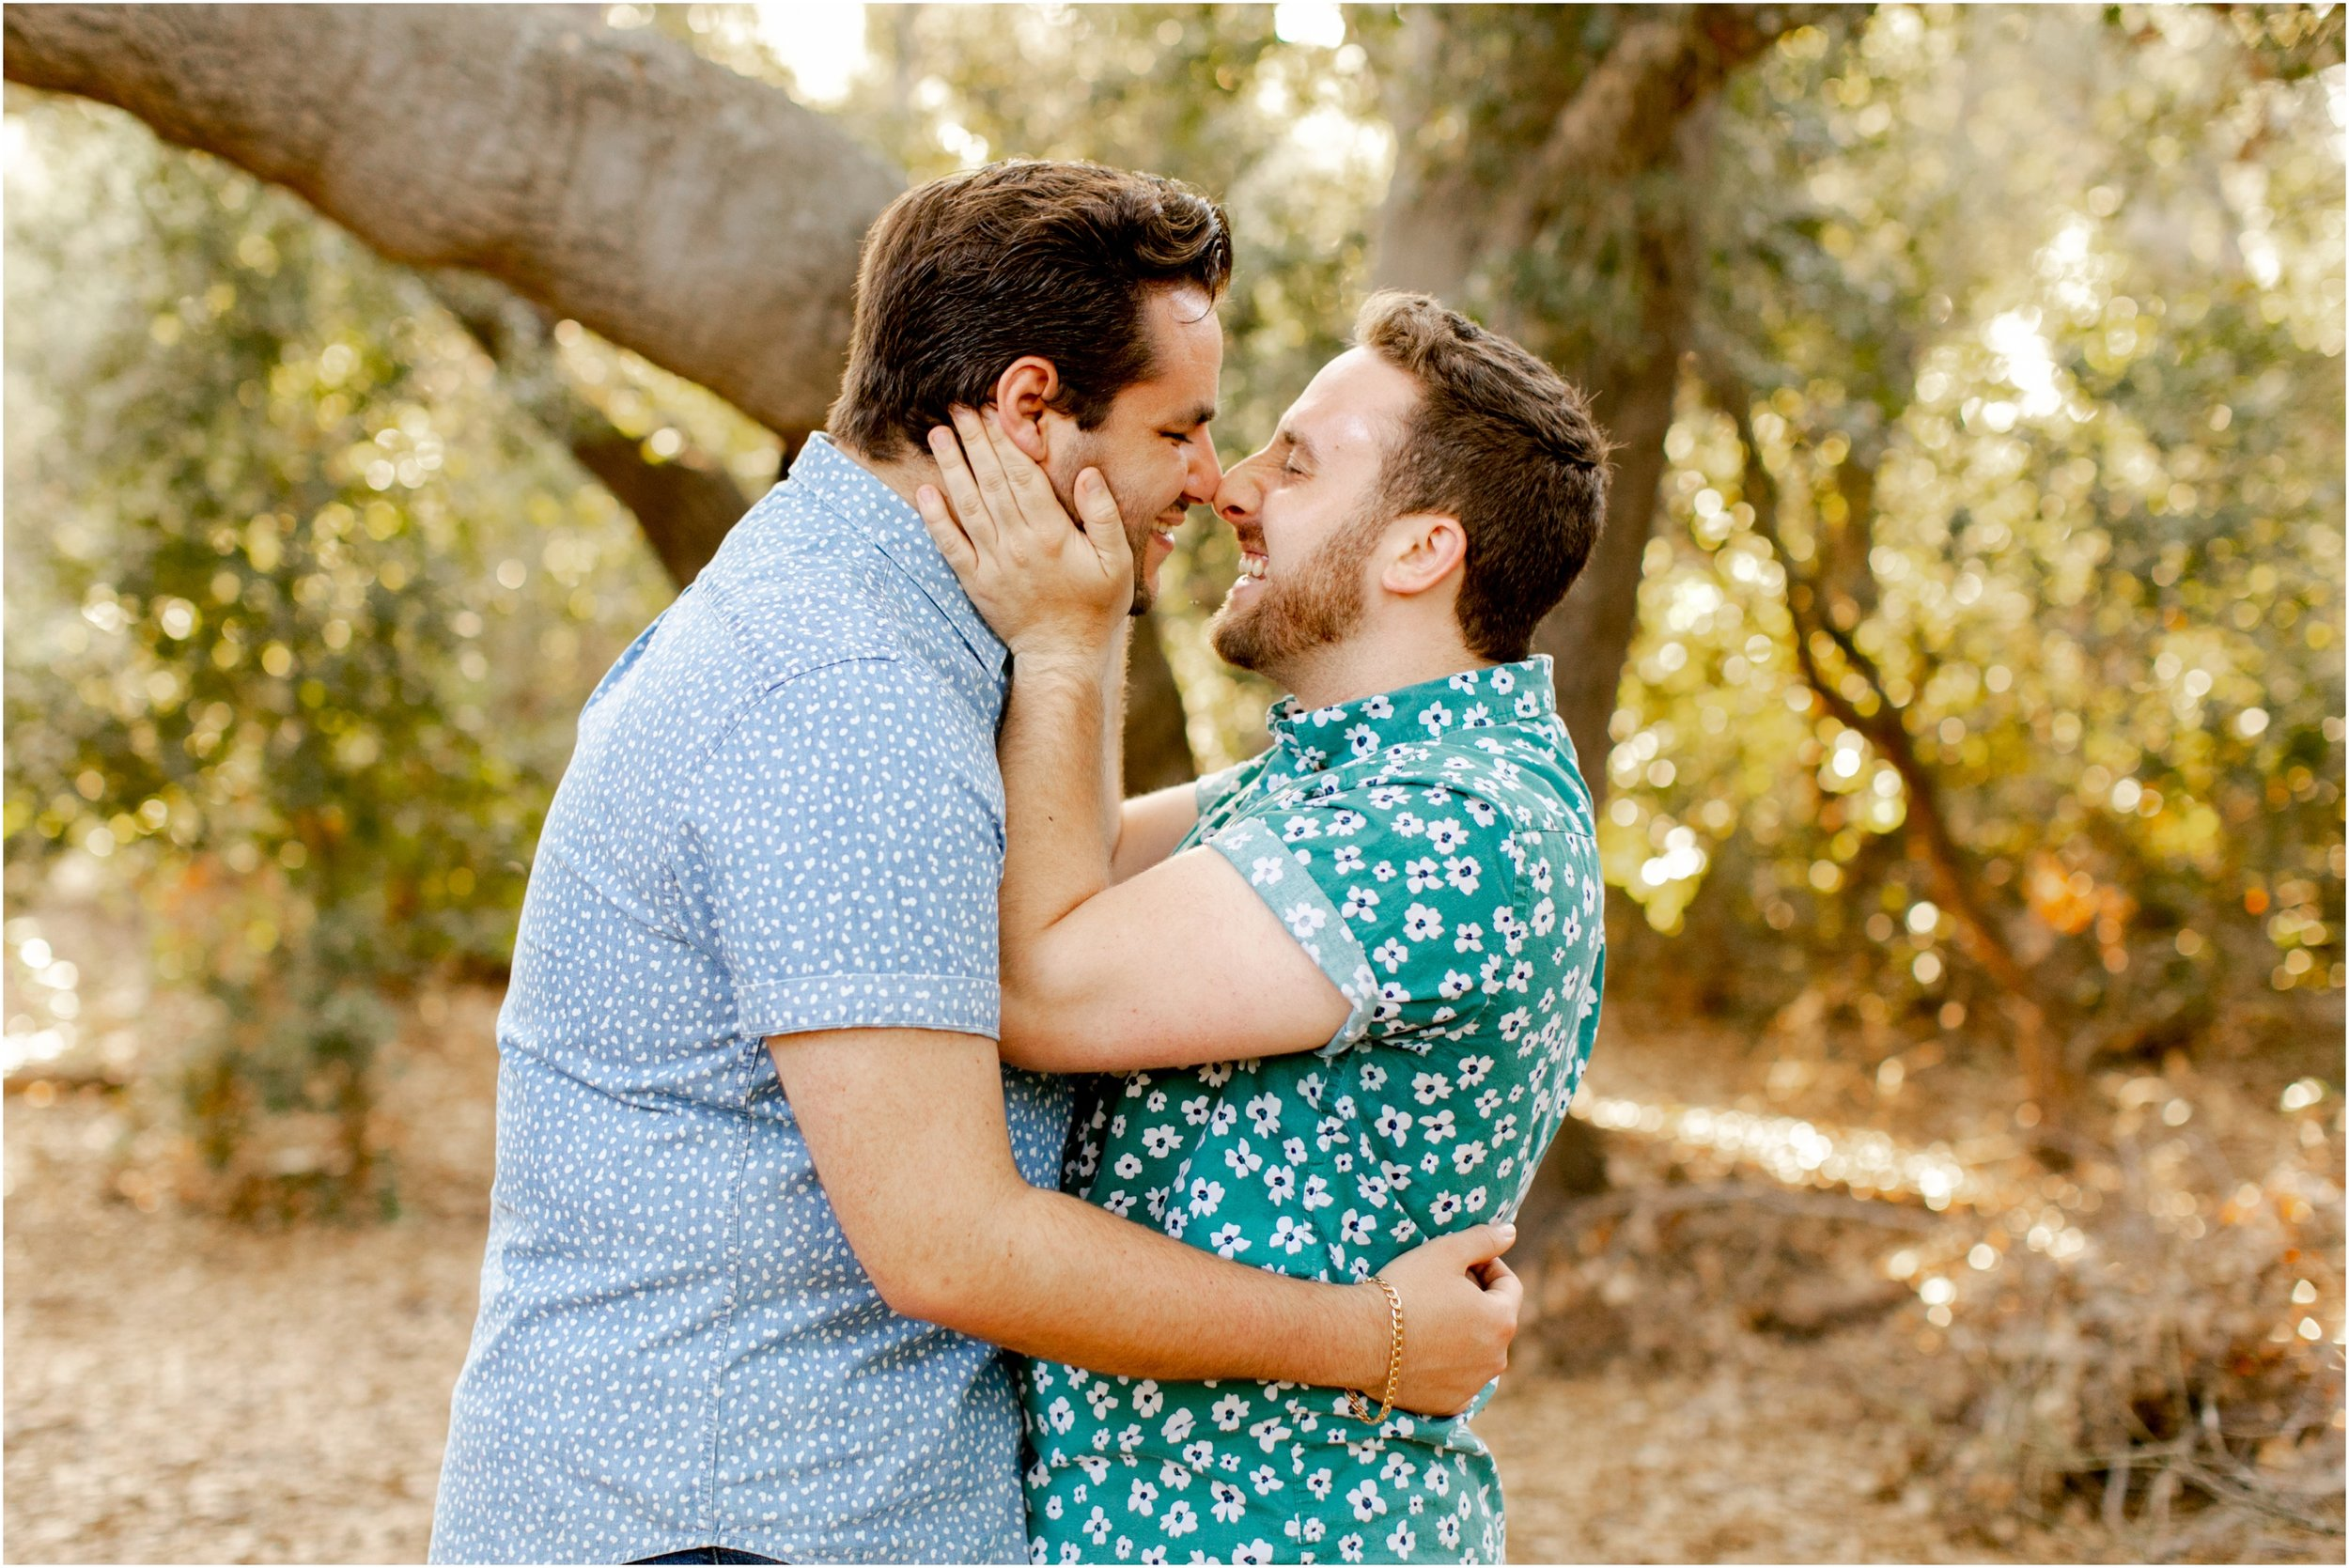 Southern California Engagement Photographer, California Engagement Photographer, Engagement Photographer, Palm Springs Engagement, San Diego Engagement, Desert Engagement, Joshua Tree Engagement, Destination Engagement Session, Orange County Engagement, Pioneertown Engagement session, Palm Springs engagement photographer, Joshua tree engagement photographer, Palm Springs Photographer, Joshua Tree Photographer, San Diego Photographer, Same Sex Photographer, Same Sex Engagement Session, LGBQT